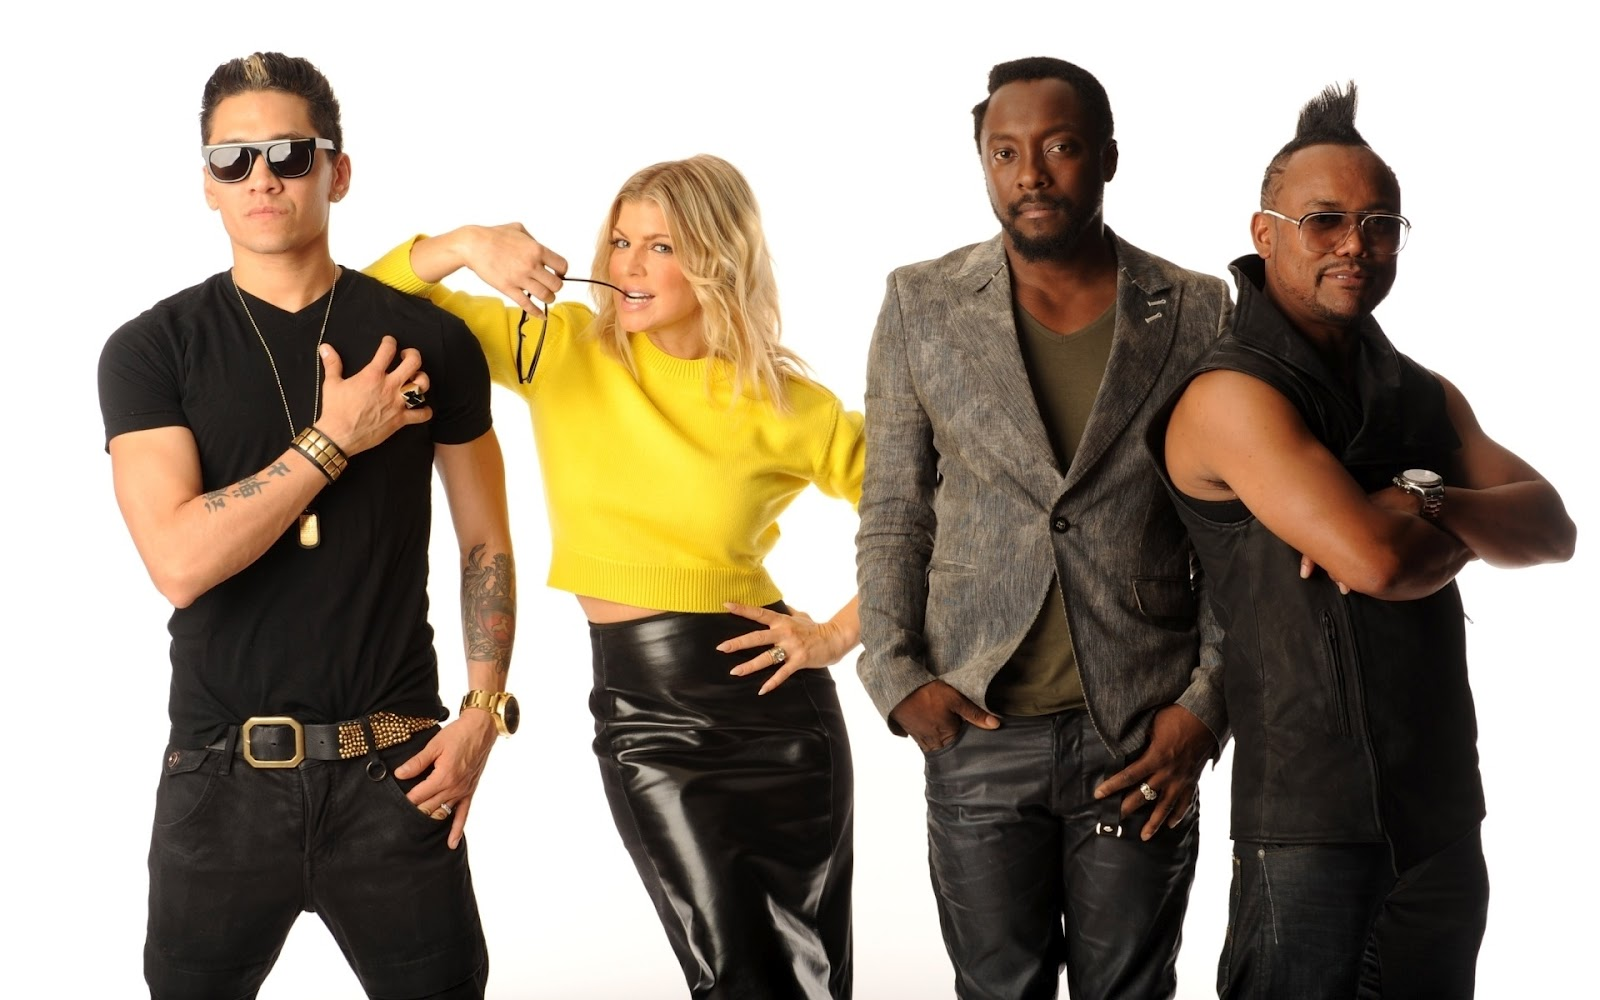 92 Wallpapers: Black Eyed peas HD Wallpaper